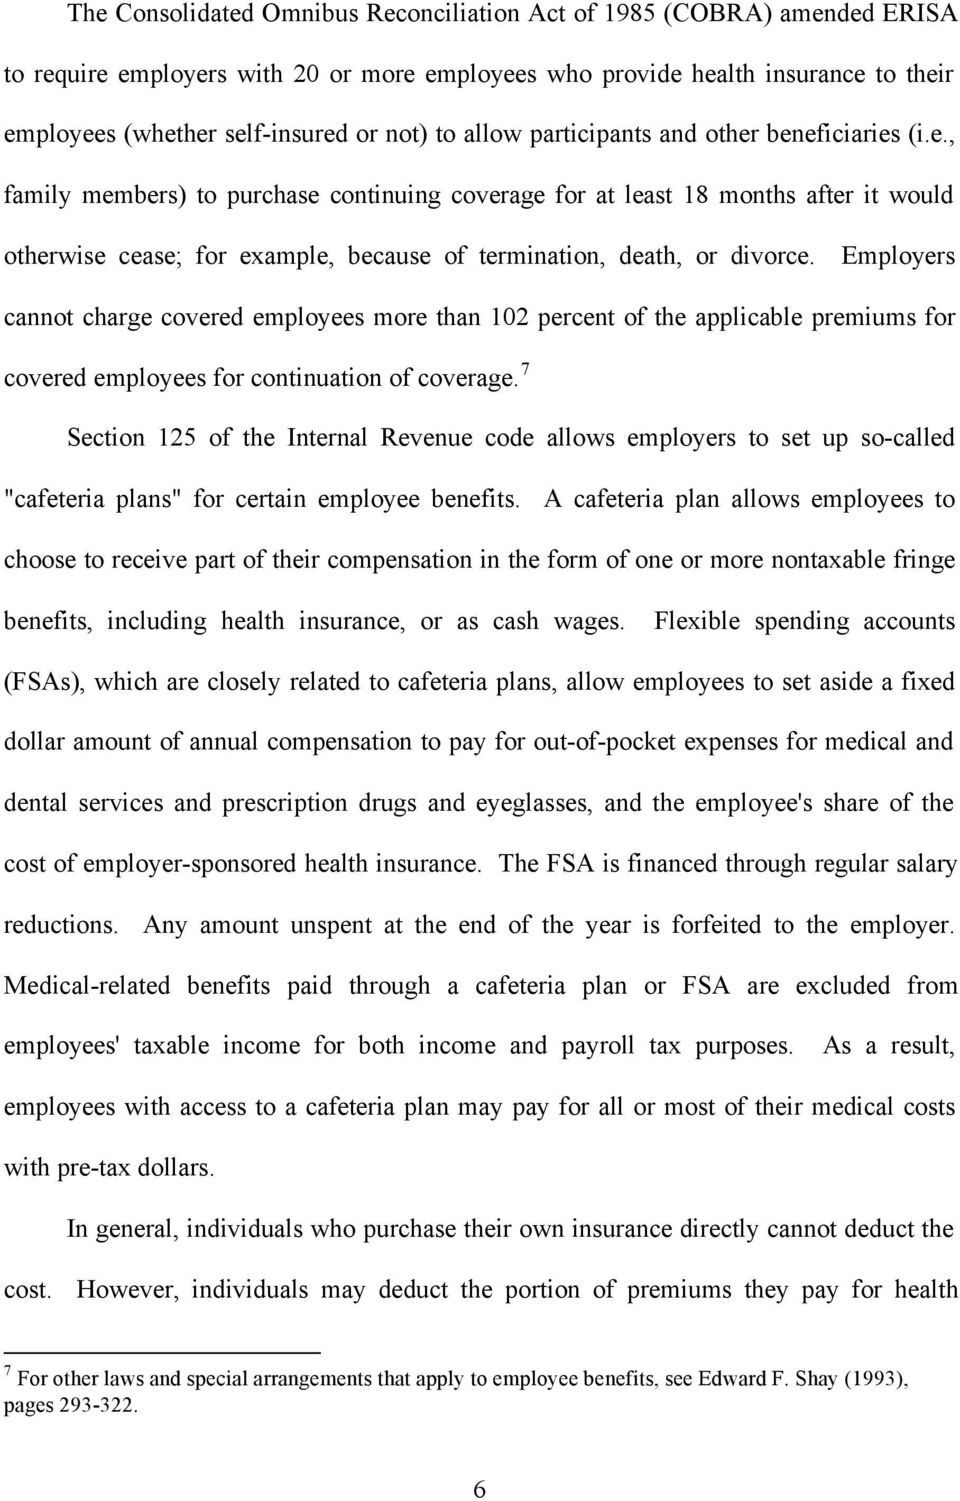 Employers cannot charge covered employees more than 102 percent of the applicable premiums for covered employees for continuation of coverage.